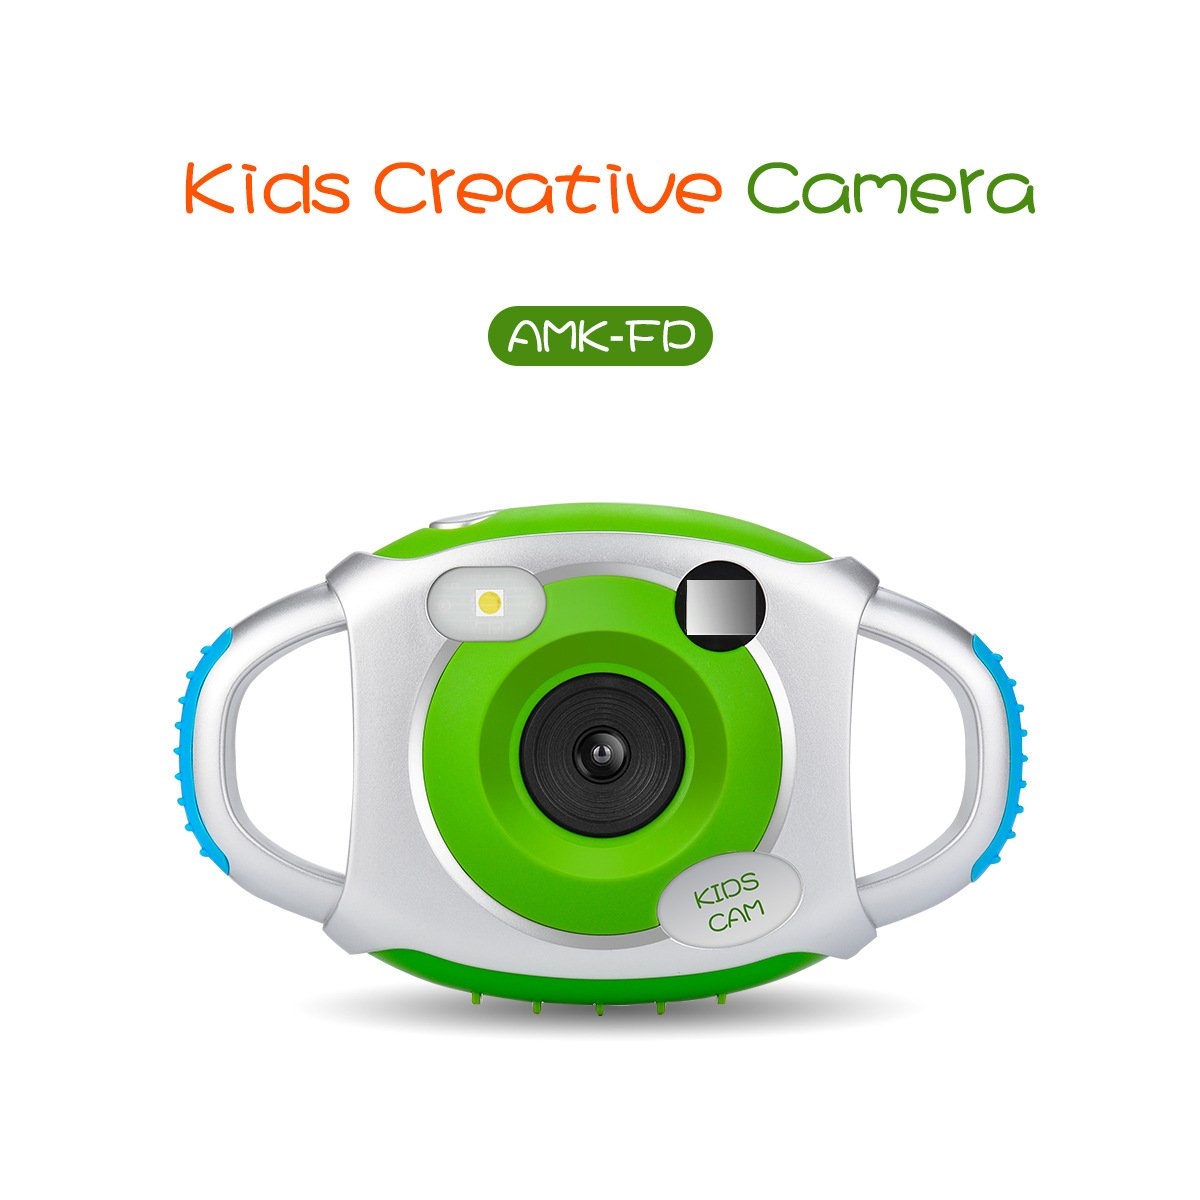 Easy to Use Yellow 16G Micro SD Card 12MP HD Underwater Action Camera Camcorder with 8X Digital Zoom 2.0 Inch LCD Display Kids Waterproof Camera Digital Camera for 4-10 Years Old Children